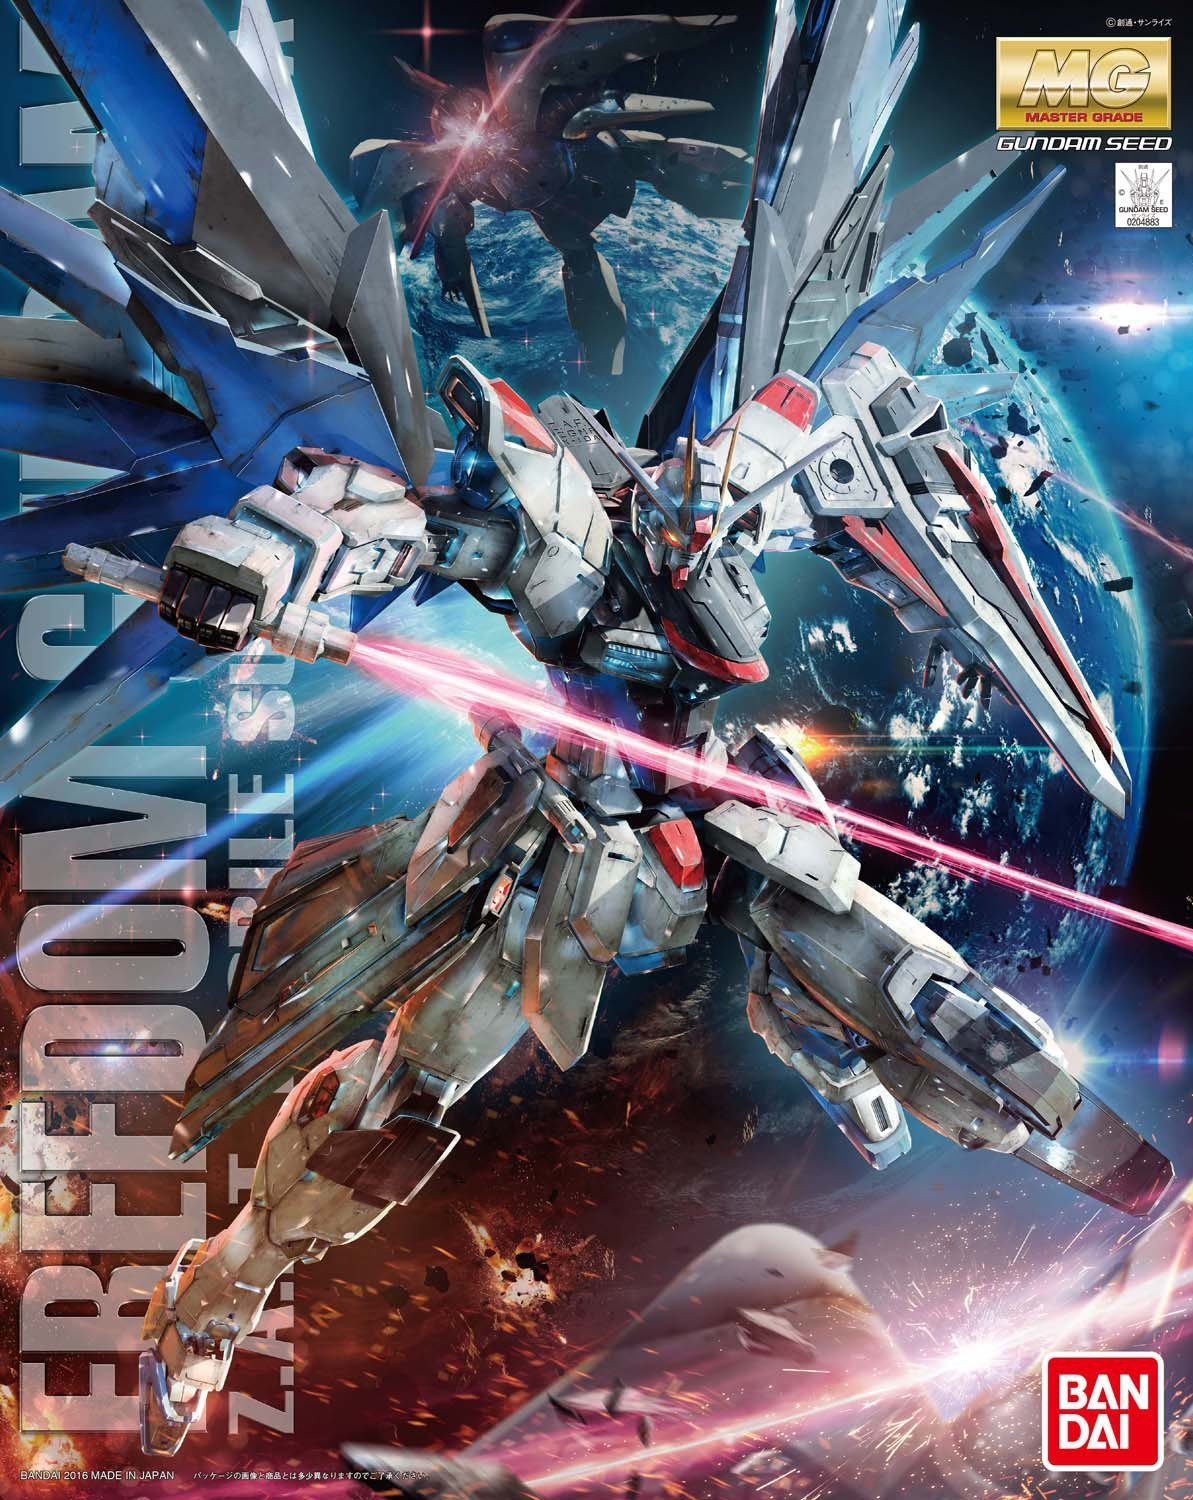 MG 1/100 Freedom Gundam Ver.2.0 - Model Kit image